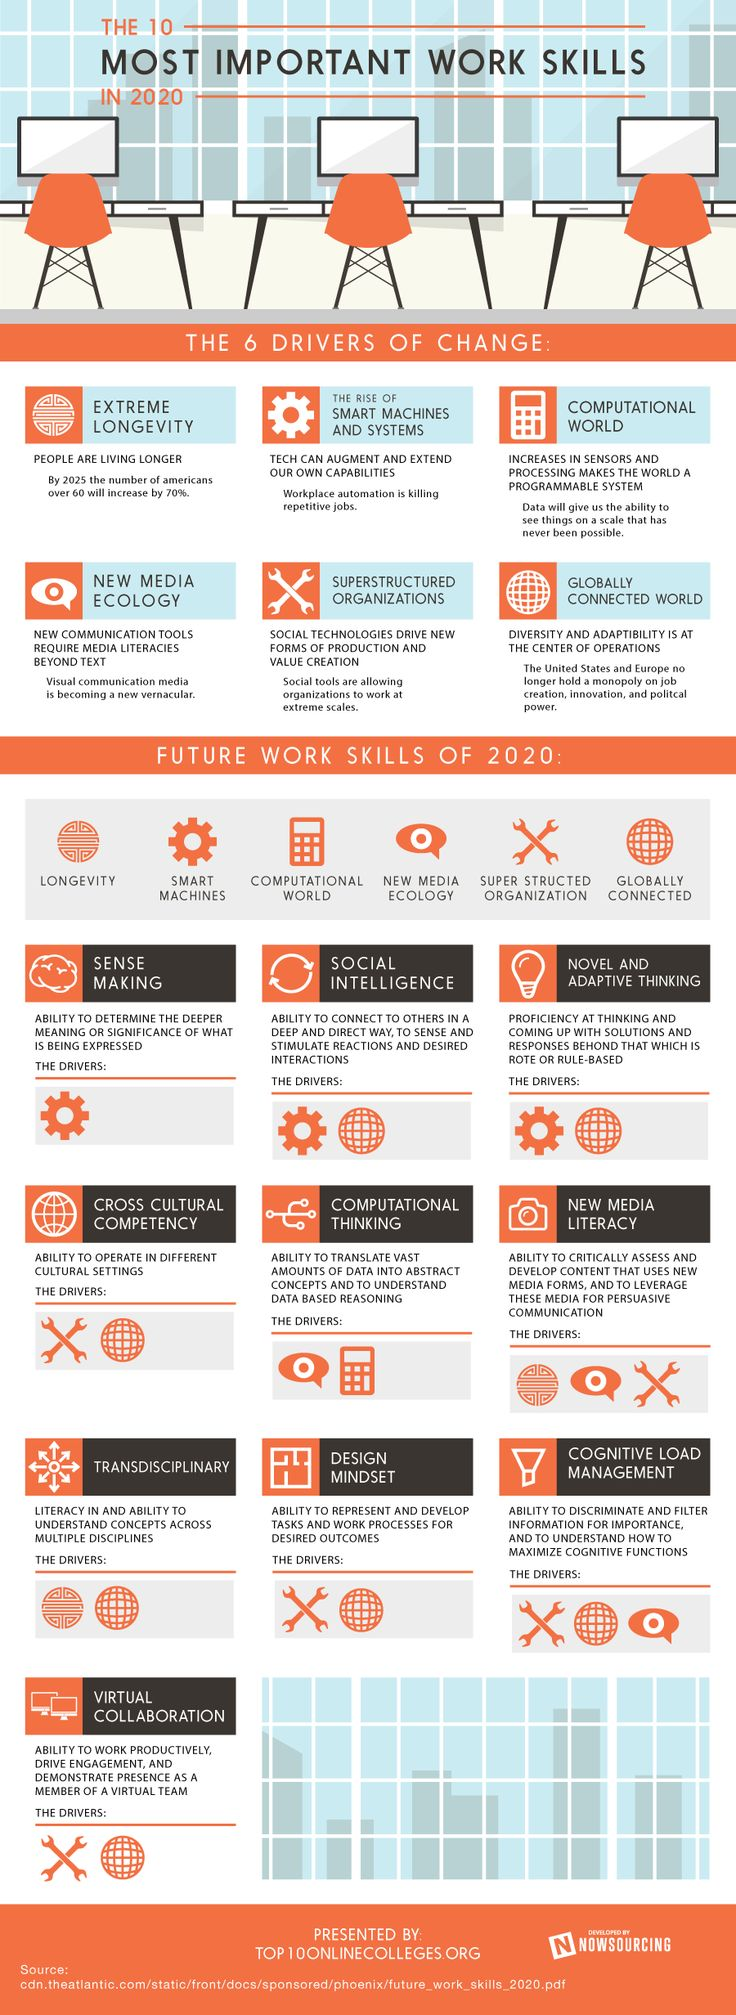 The 10 most important work skills infographic